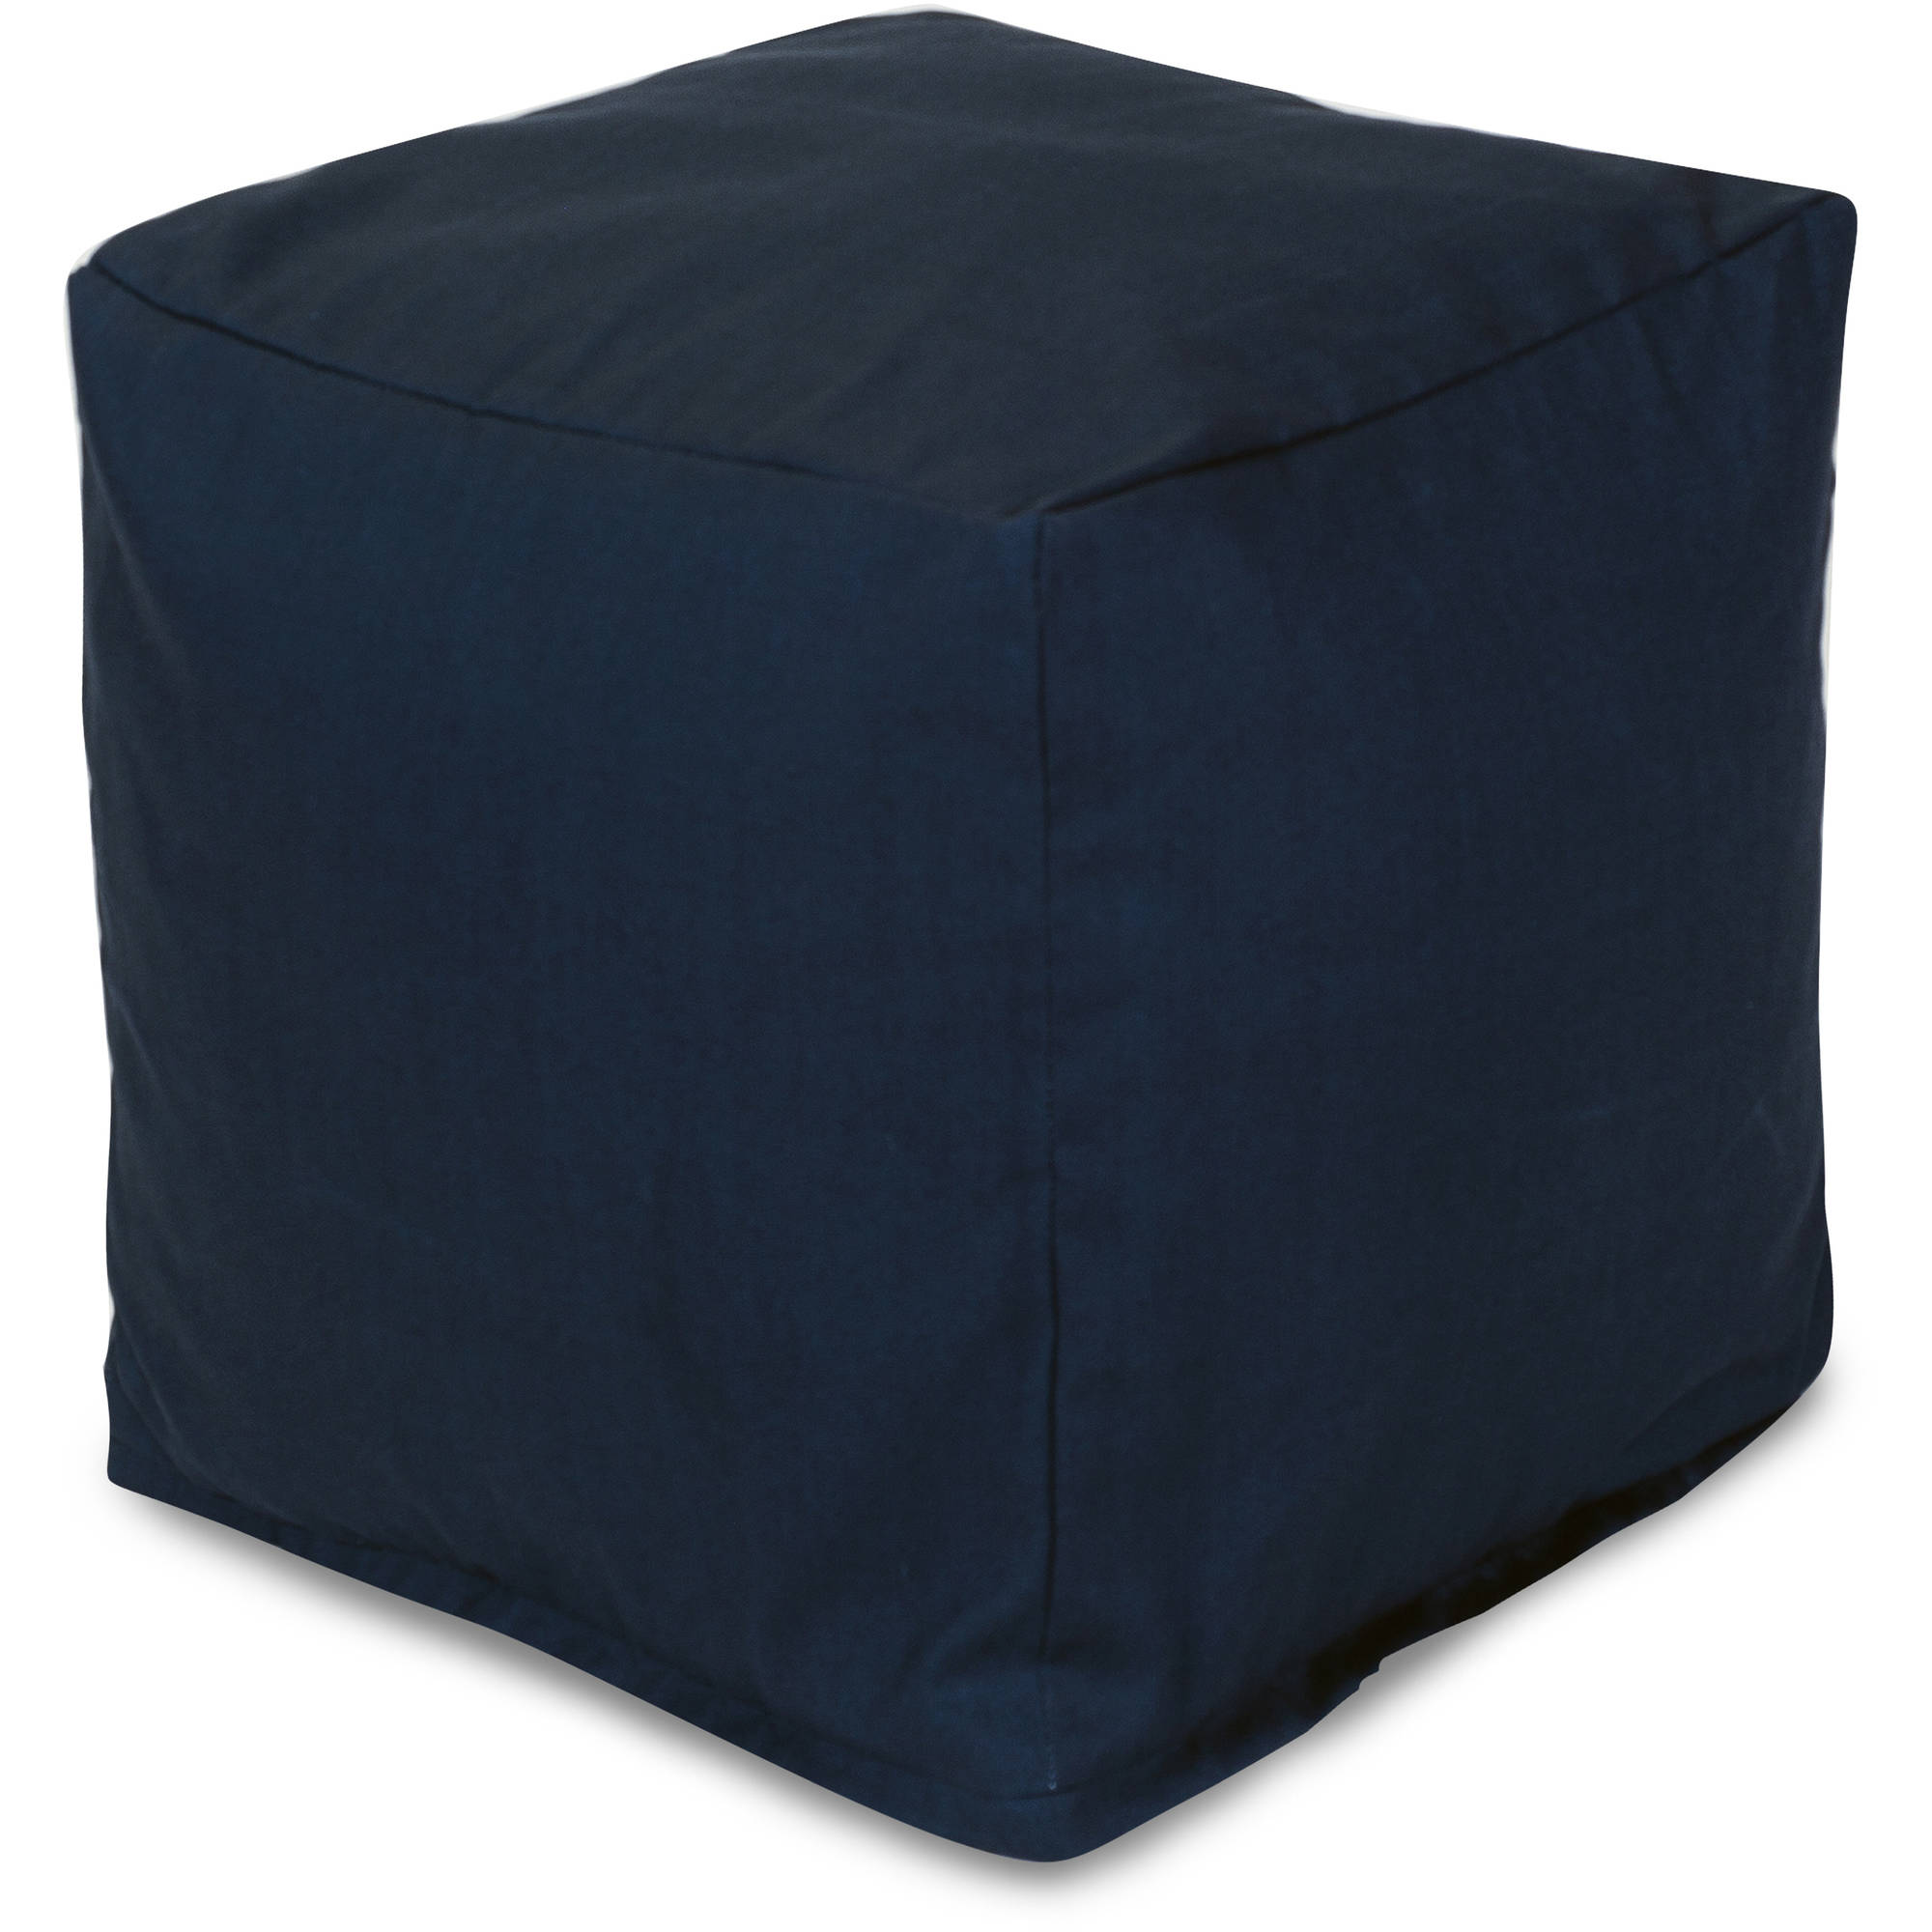 Majestic Home Goods Solid Color Bean Bag Cube, Indoor/Outdoor